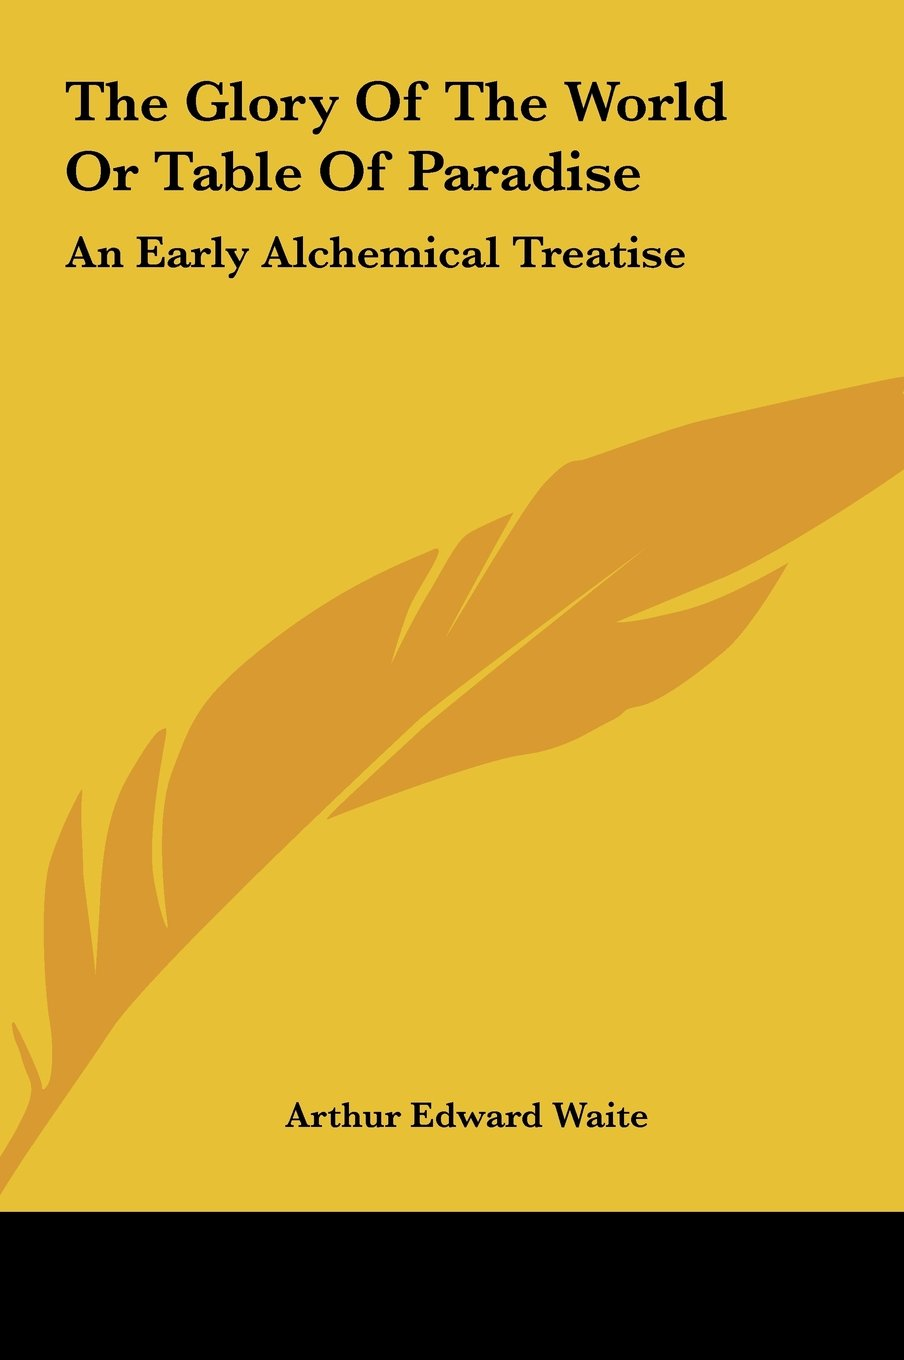 Read Online The Glory Of The World Or Table Of Paradise: An Early Alchemical Treatise pdf epub